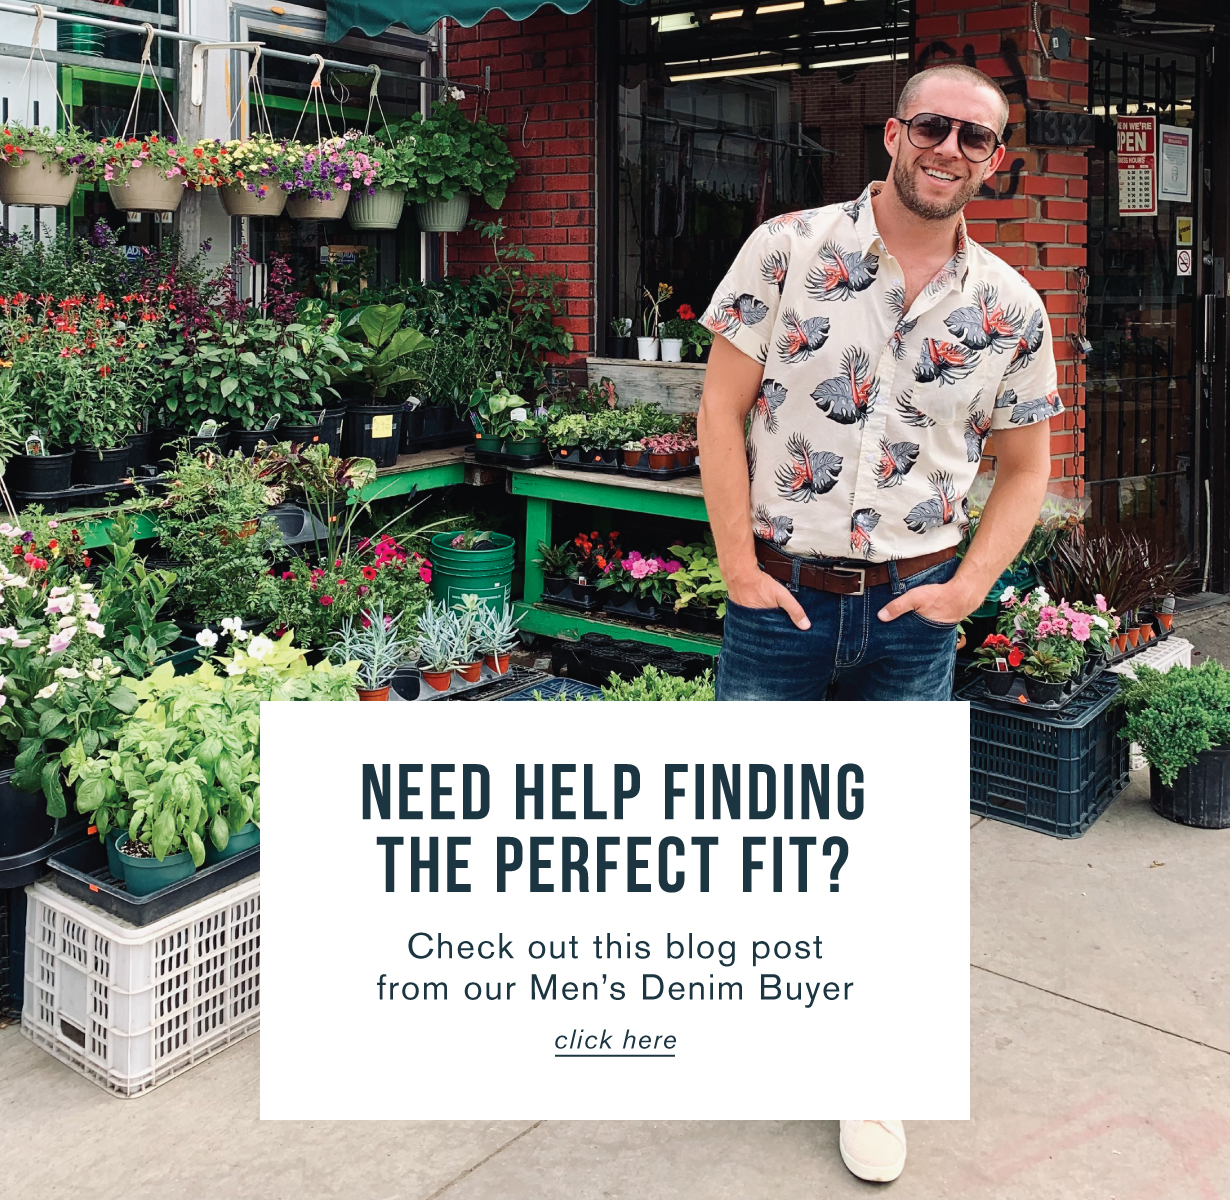 Need help finding the perfect fit? Check out this blog post from our men's denim buyer. Click here.